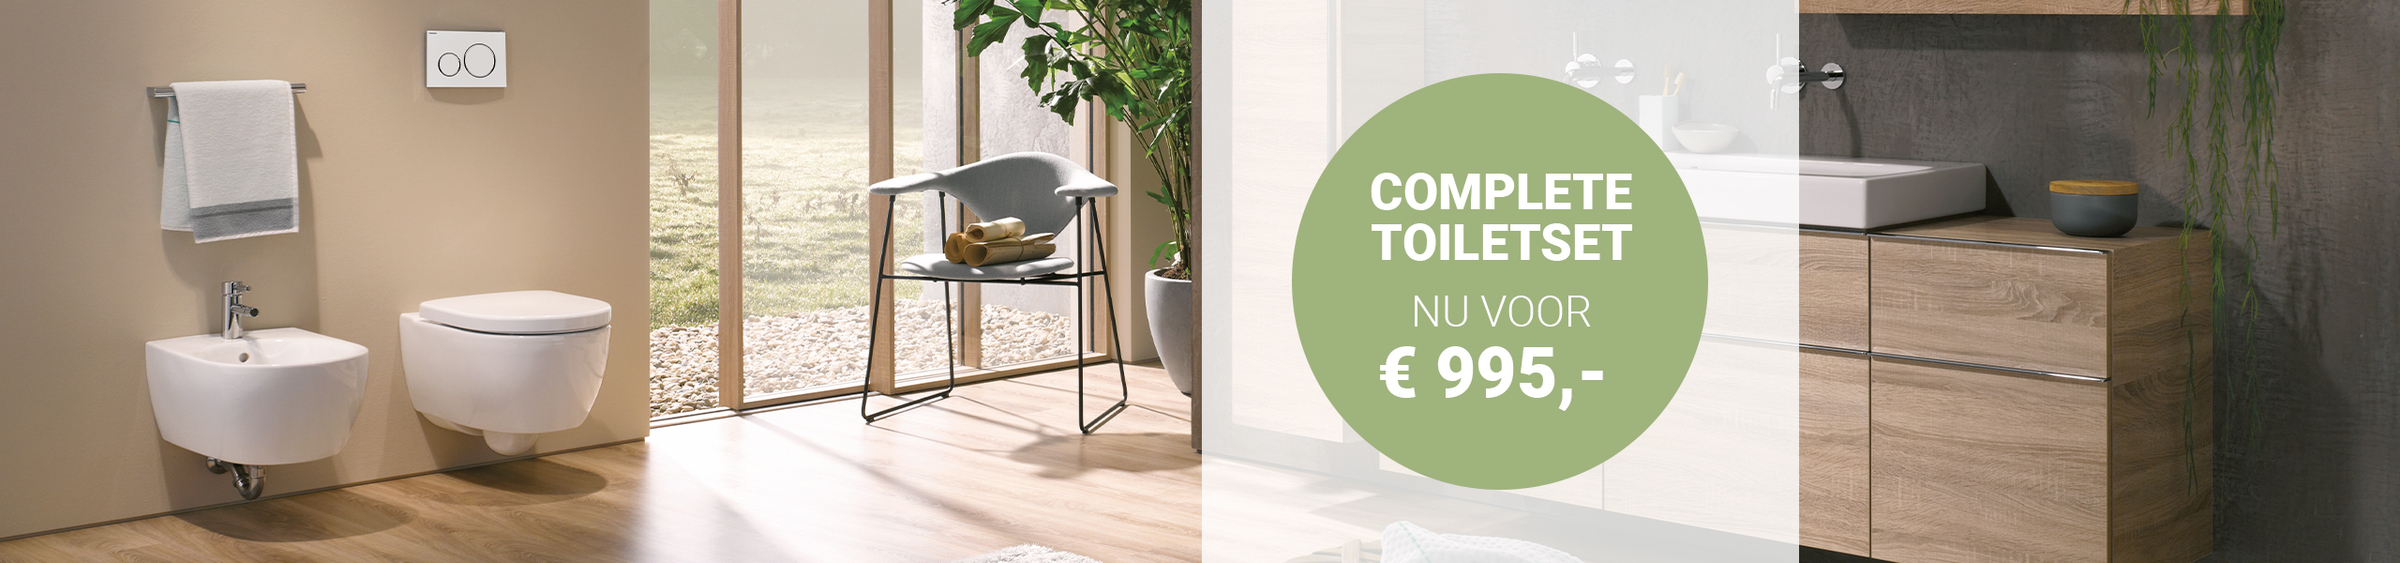 Geberit DuoFresh toiletset - Geberit DuoFresh toiletset